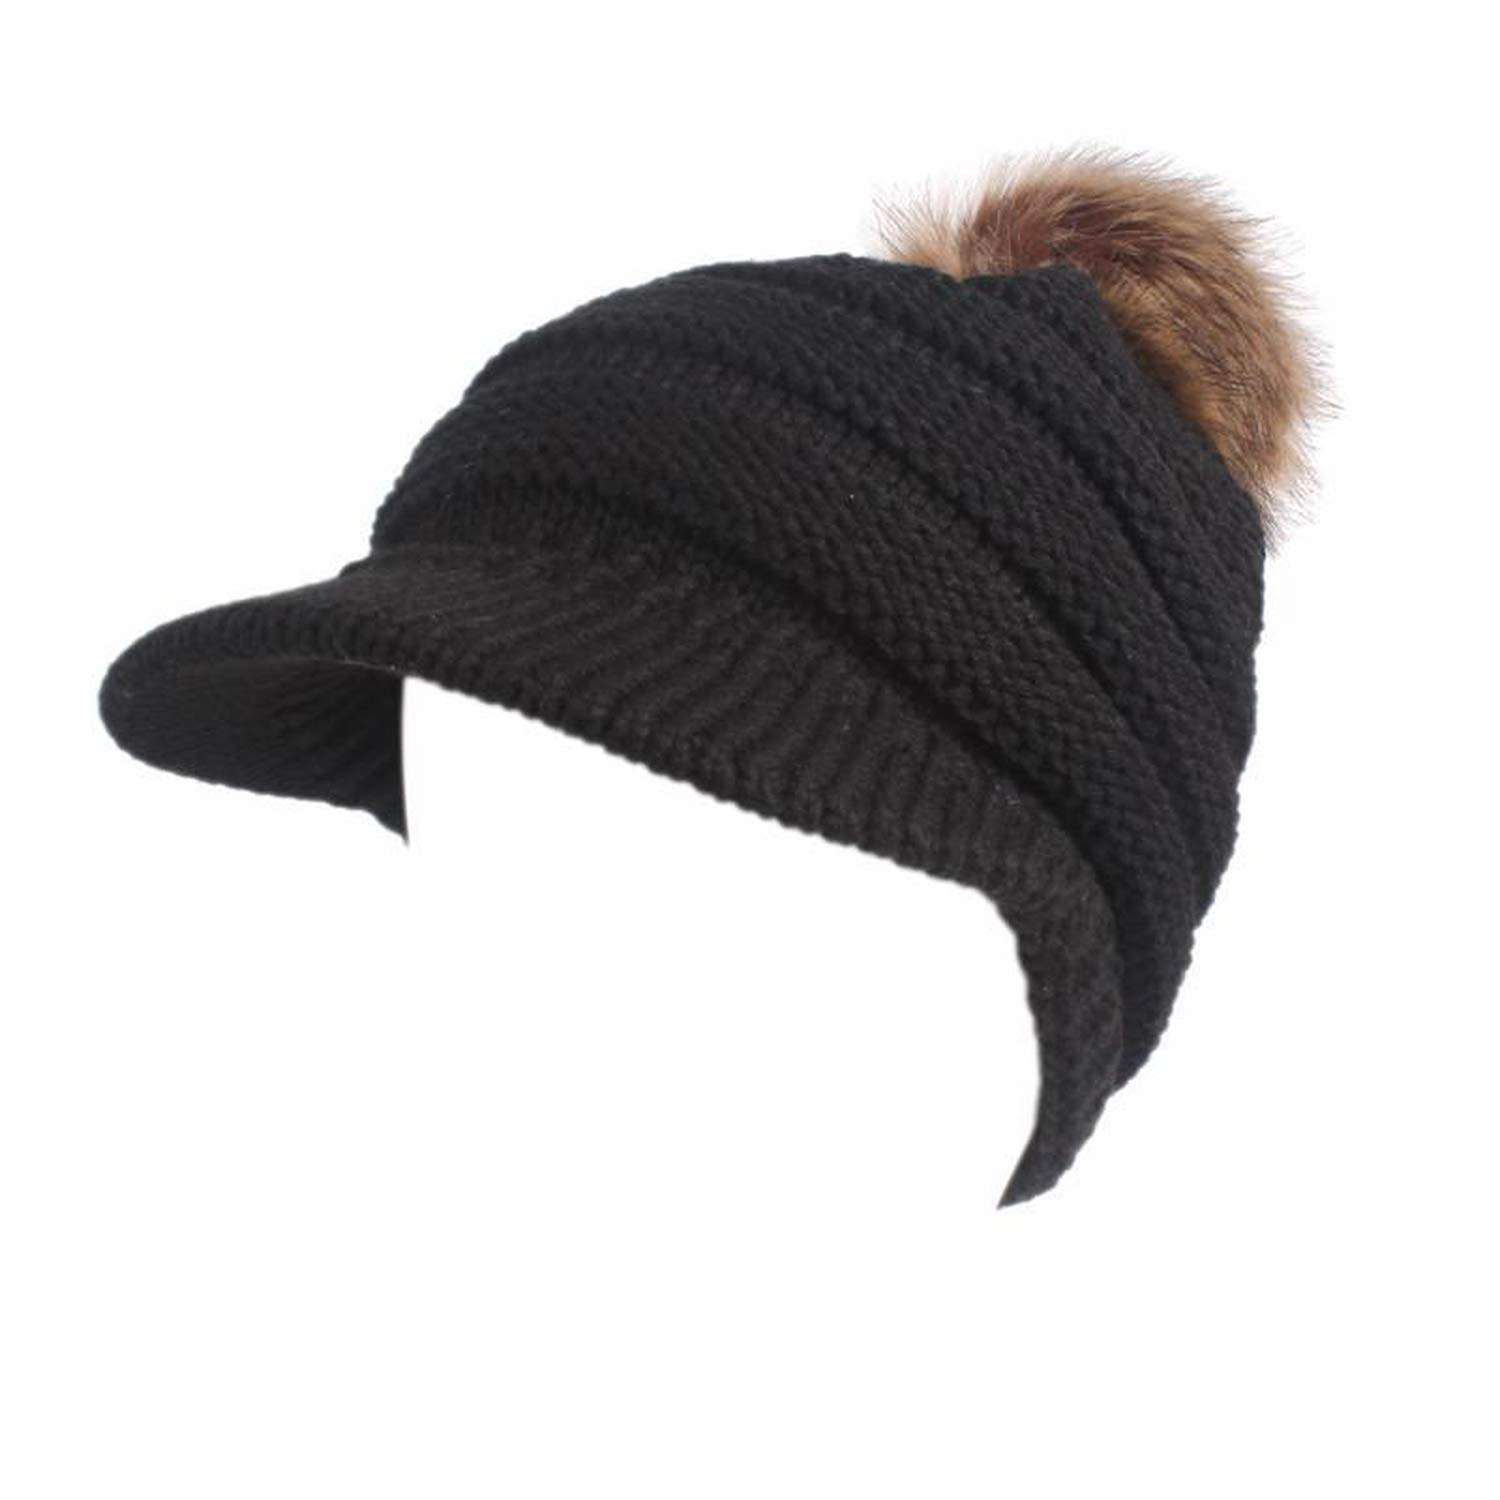 Tracy Gifts got Insp? Beanie Skull Cap with Fleece Liner